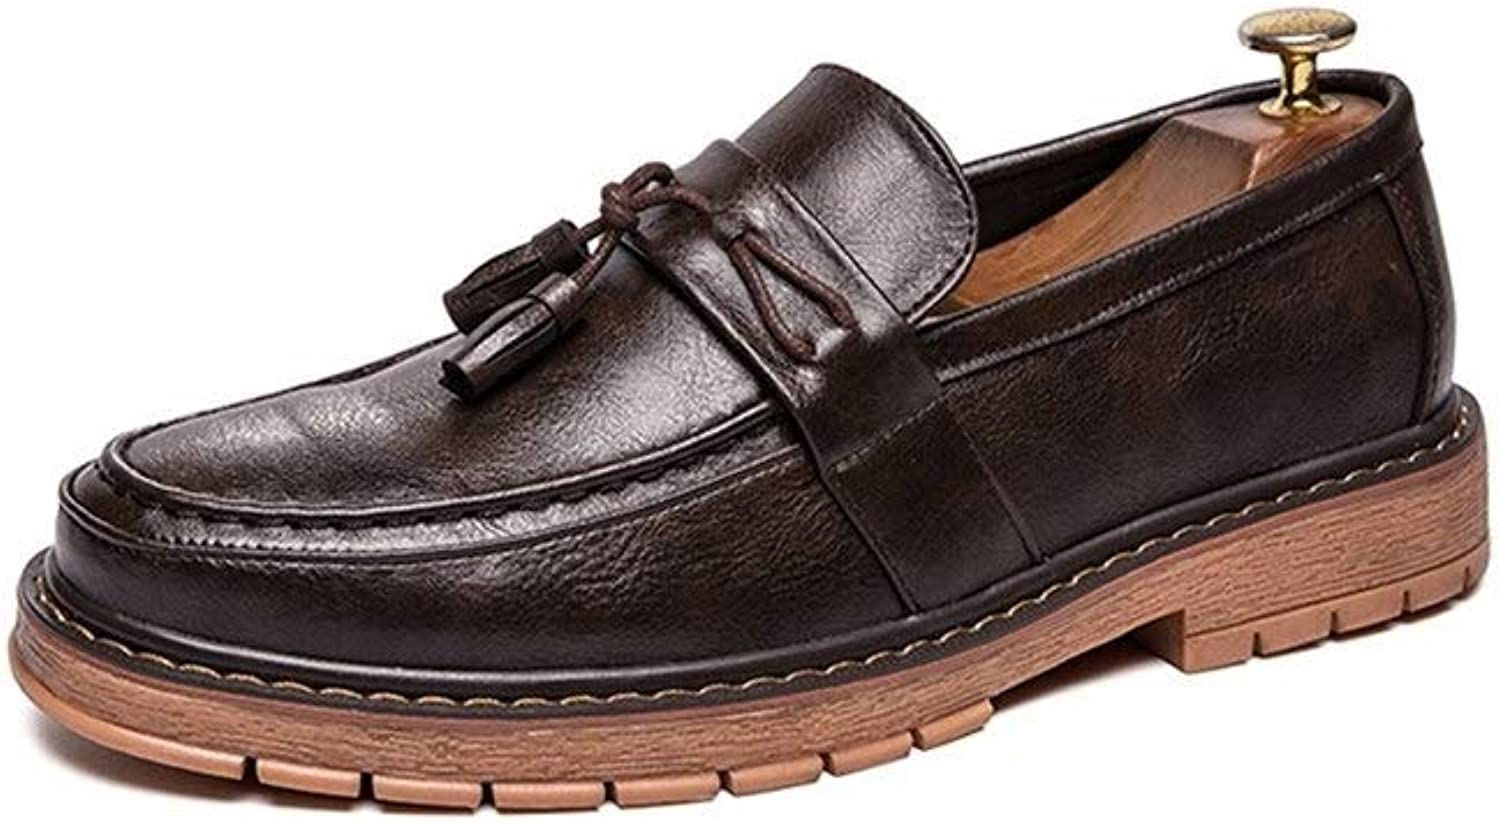 Easy Go Shopping Casual Oxford for Men Fashion Loafers With Front Tassel Comfortable Slip On Flats shoes PU Leather Upper Round Toe Abrasion Resistant Cricket shoes (color   Brown, Size   8 UK)